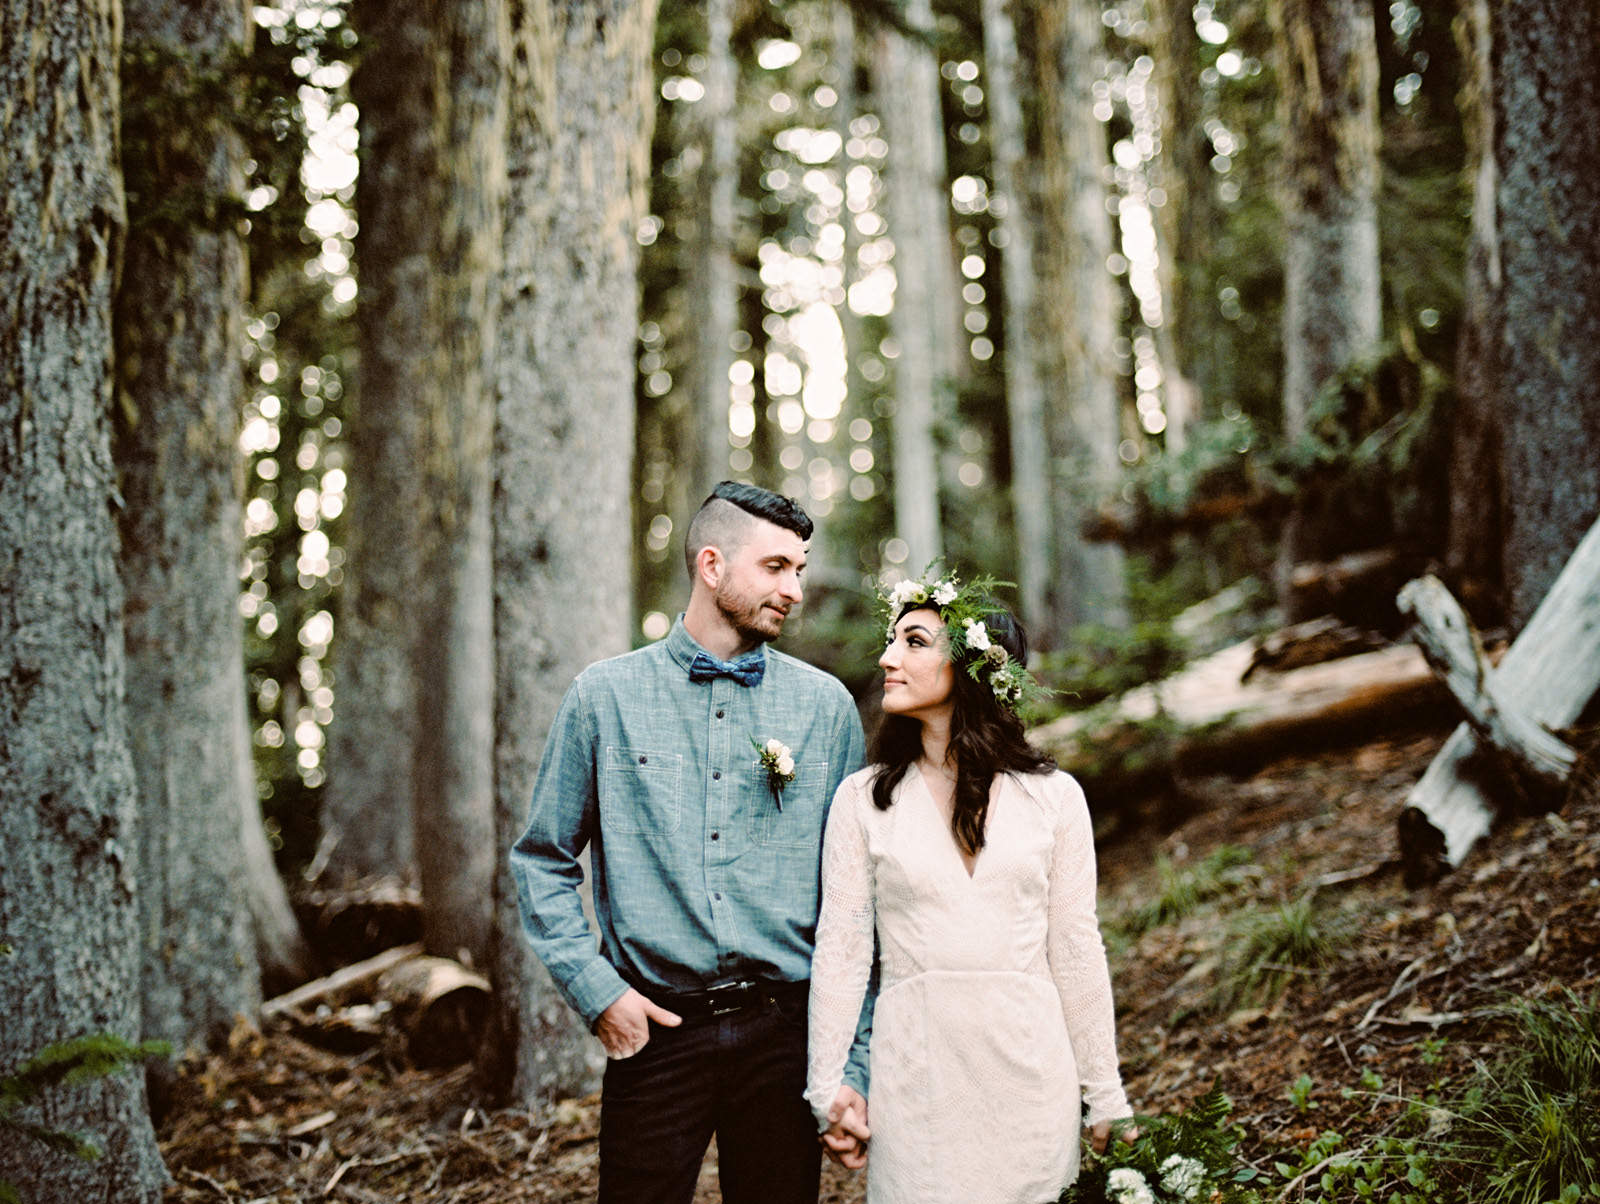 katelynnethan-blog-16 MOUNT RAINIER LOOKOUT ELOPEMENT